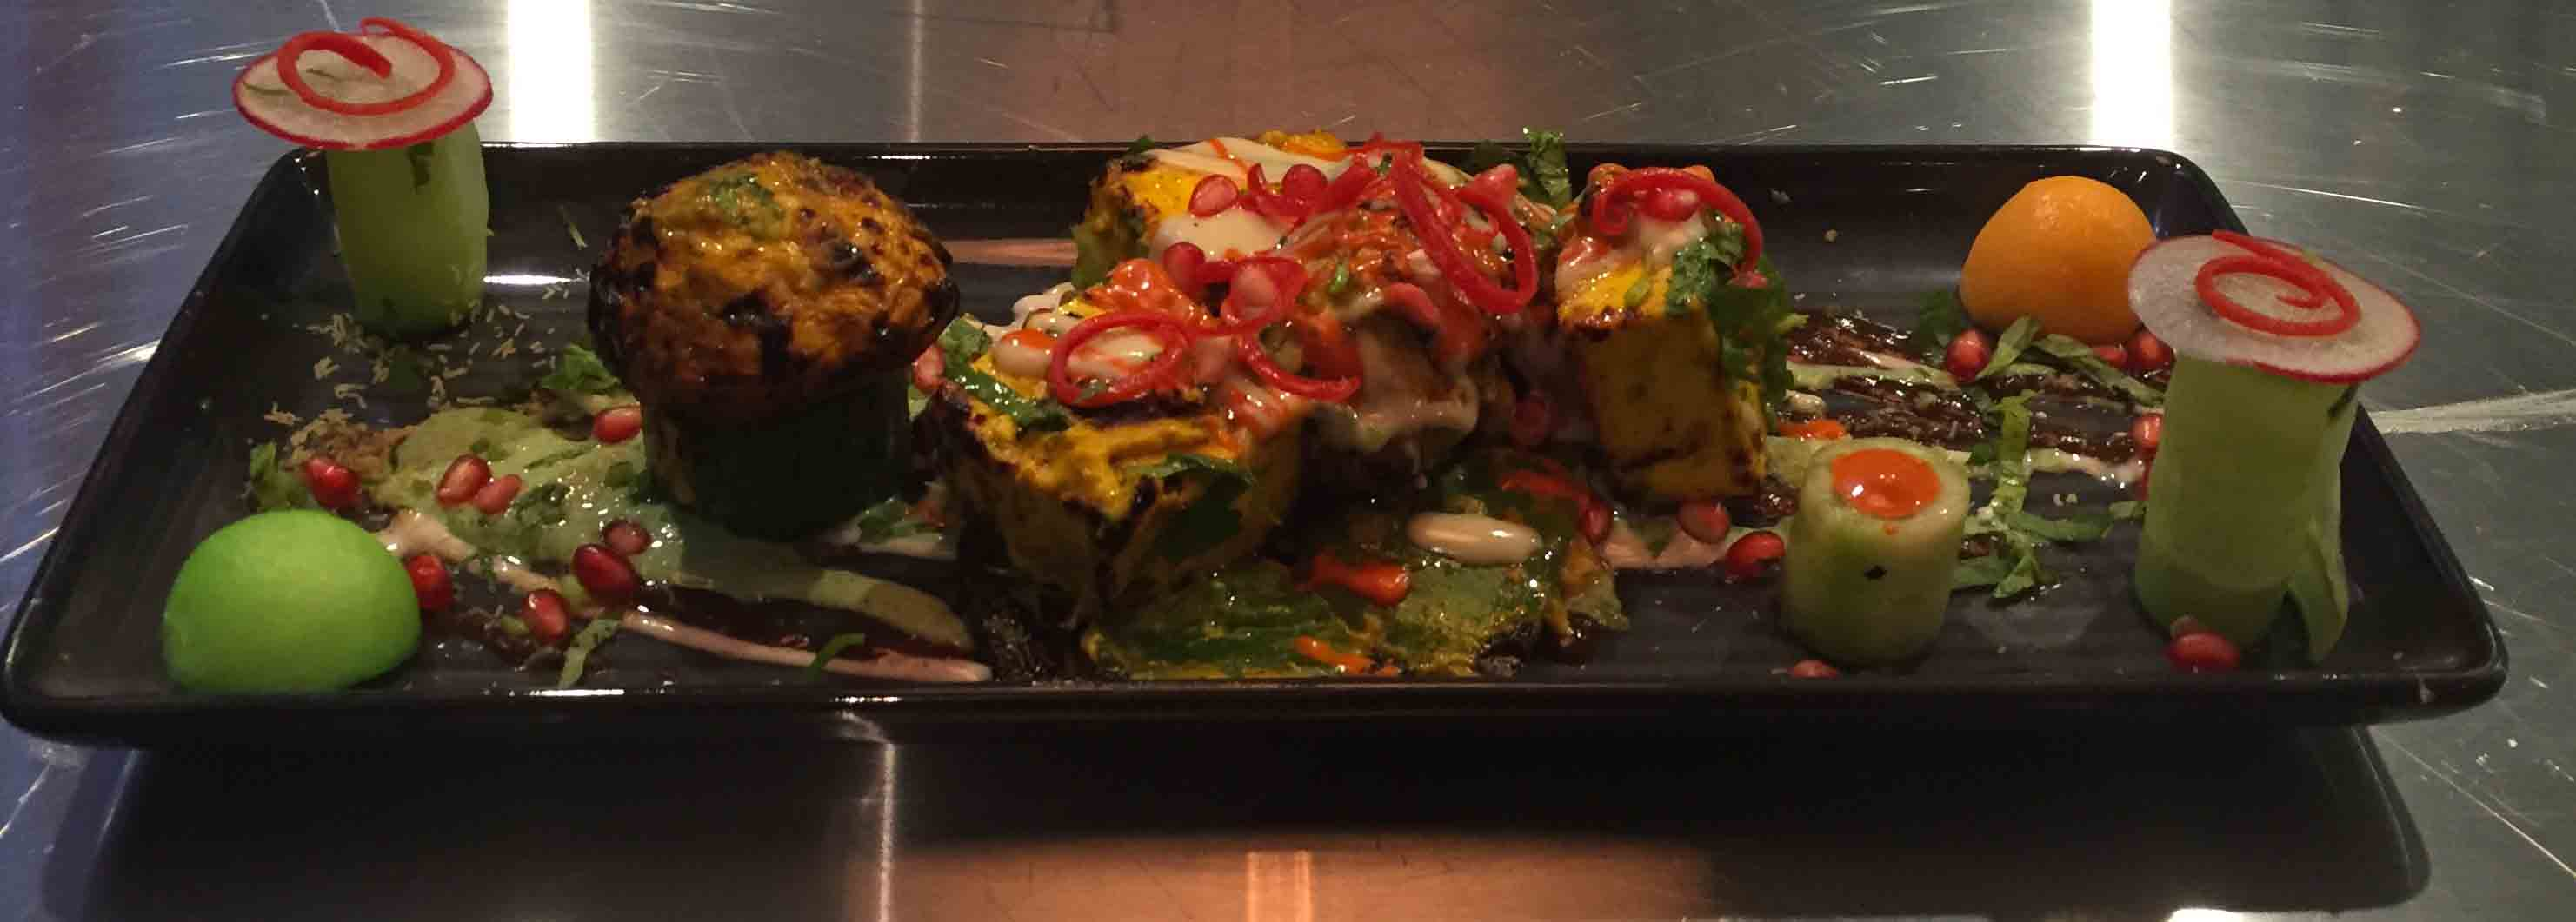 street-food-fusion-indian